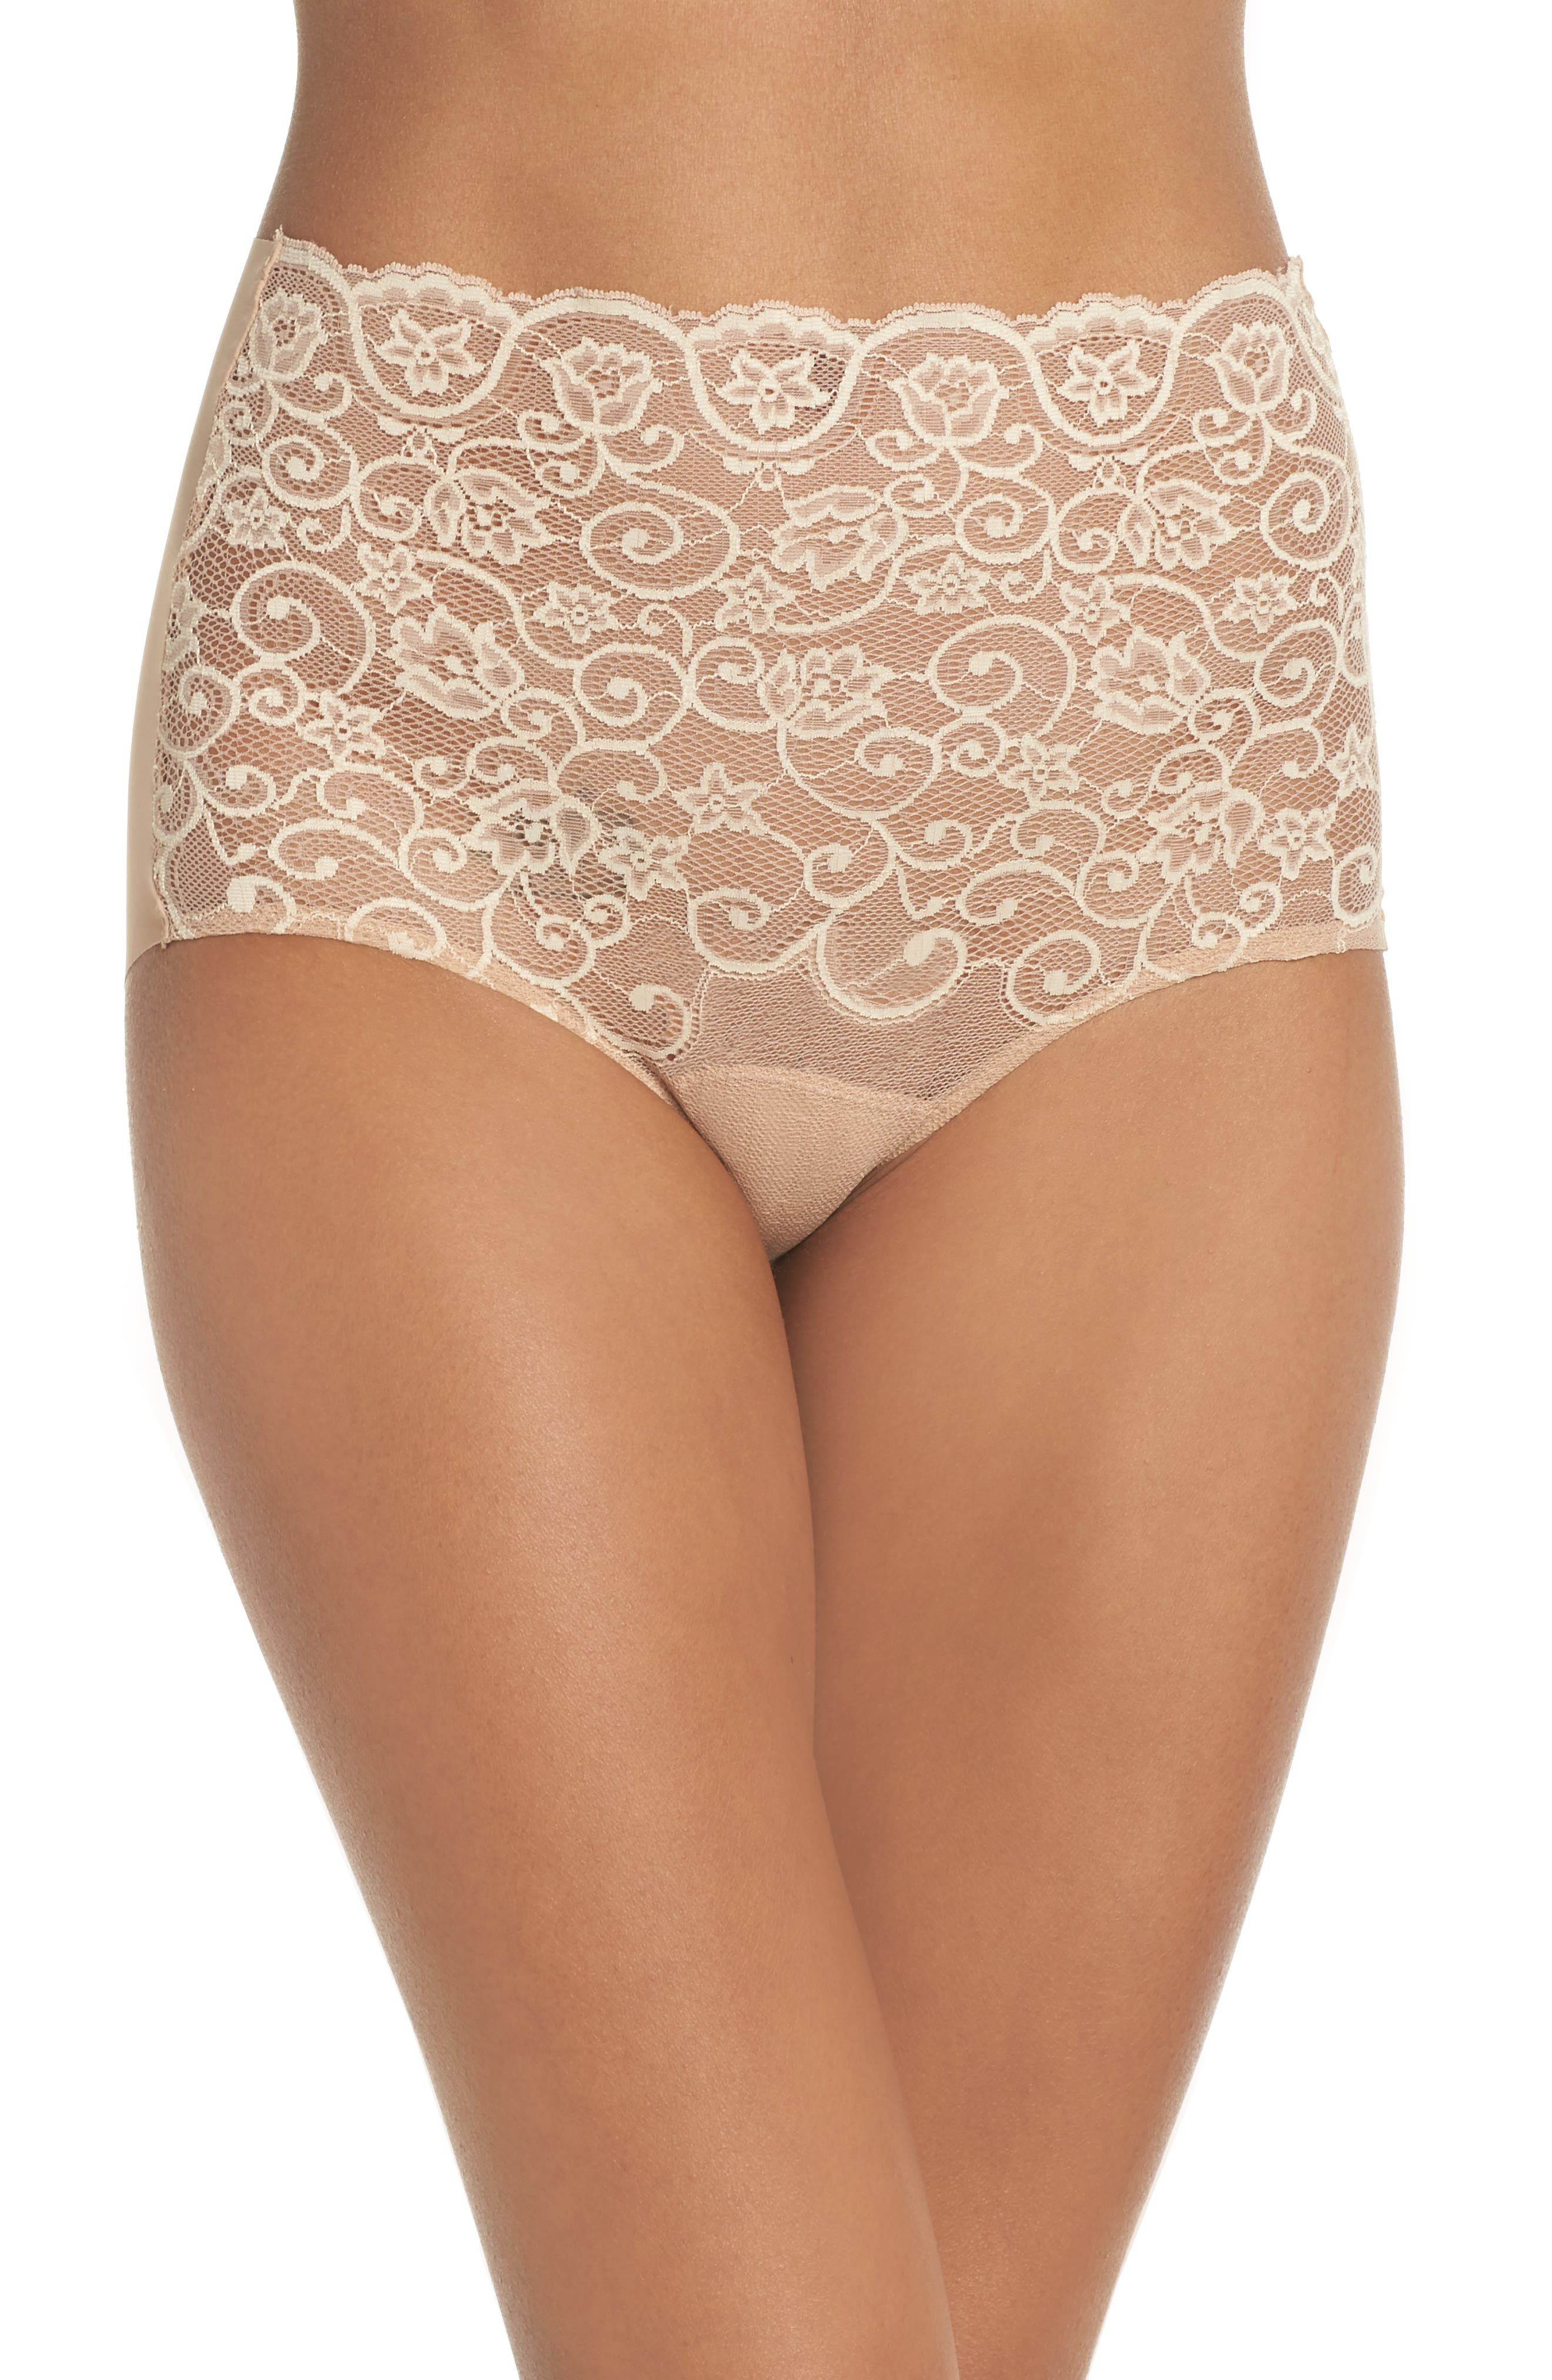 'Double Take' Lace Front High Rise Panties,                         Main,                         color, 251